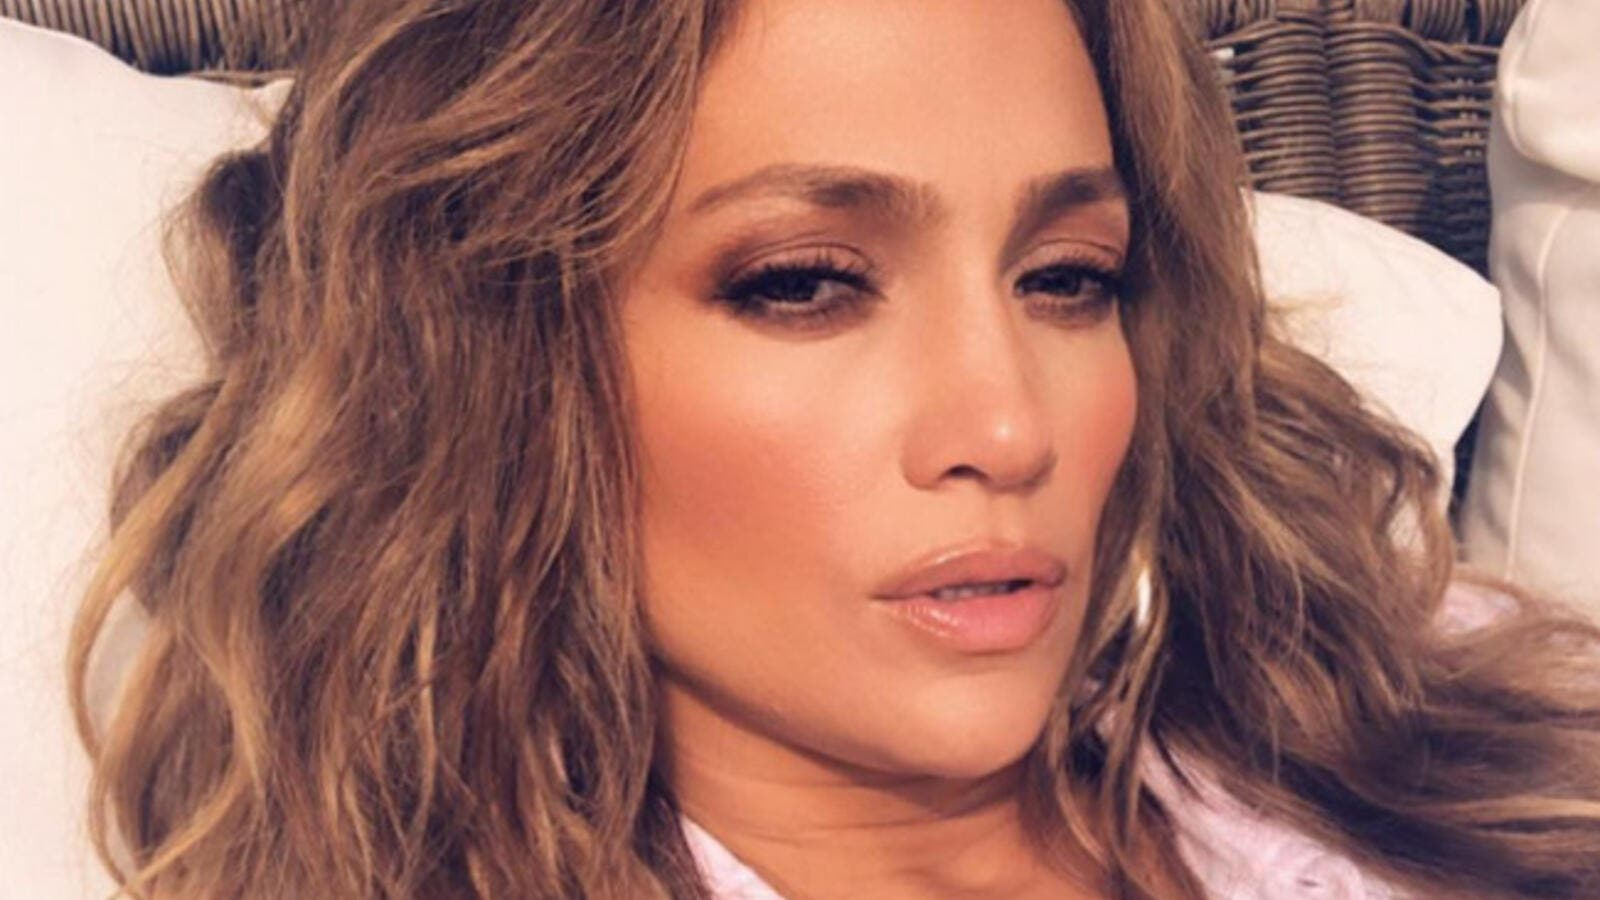 Los Angeles is in the midst of a record heat wave (Source: jlo / Instagram)